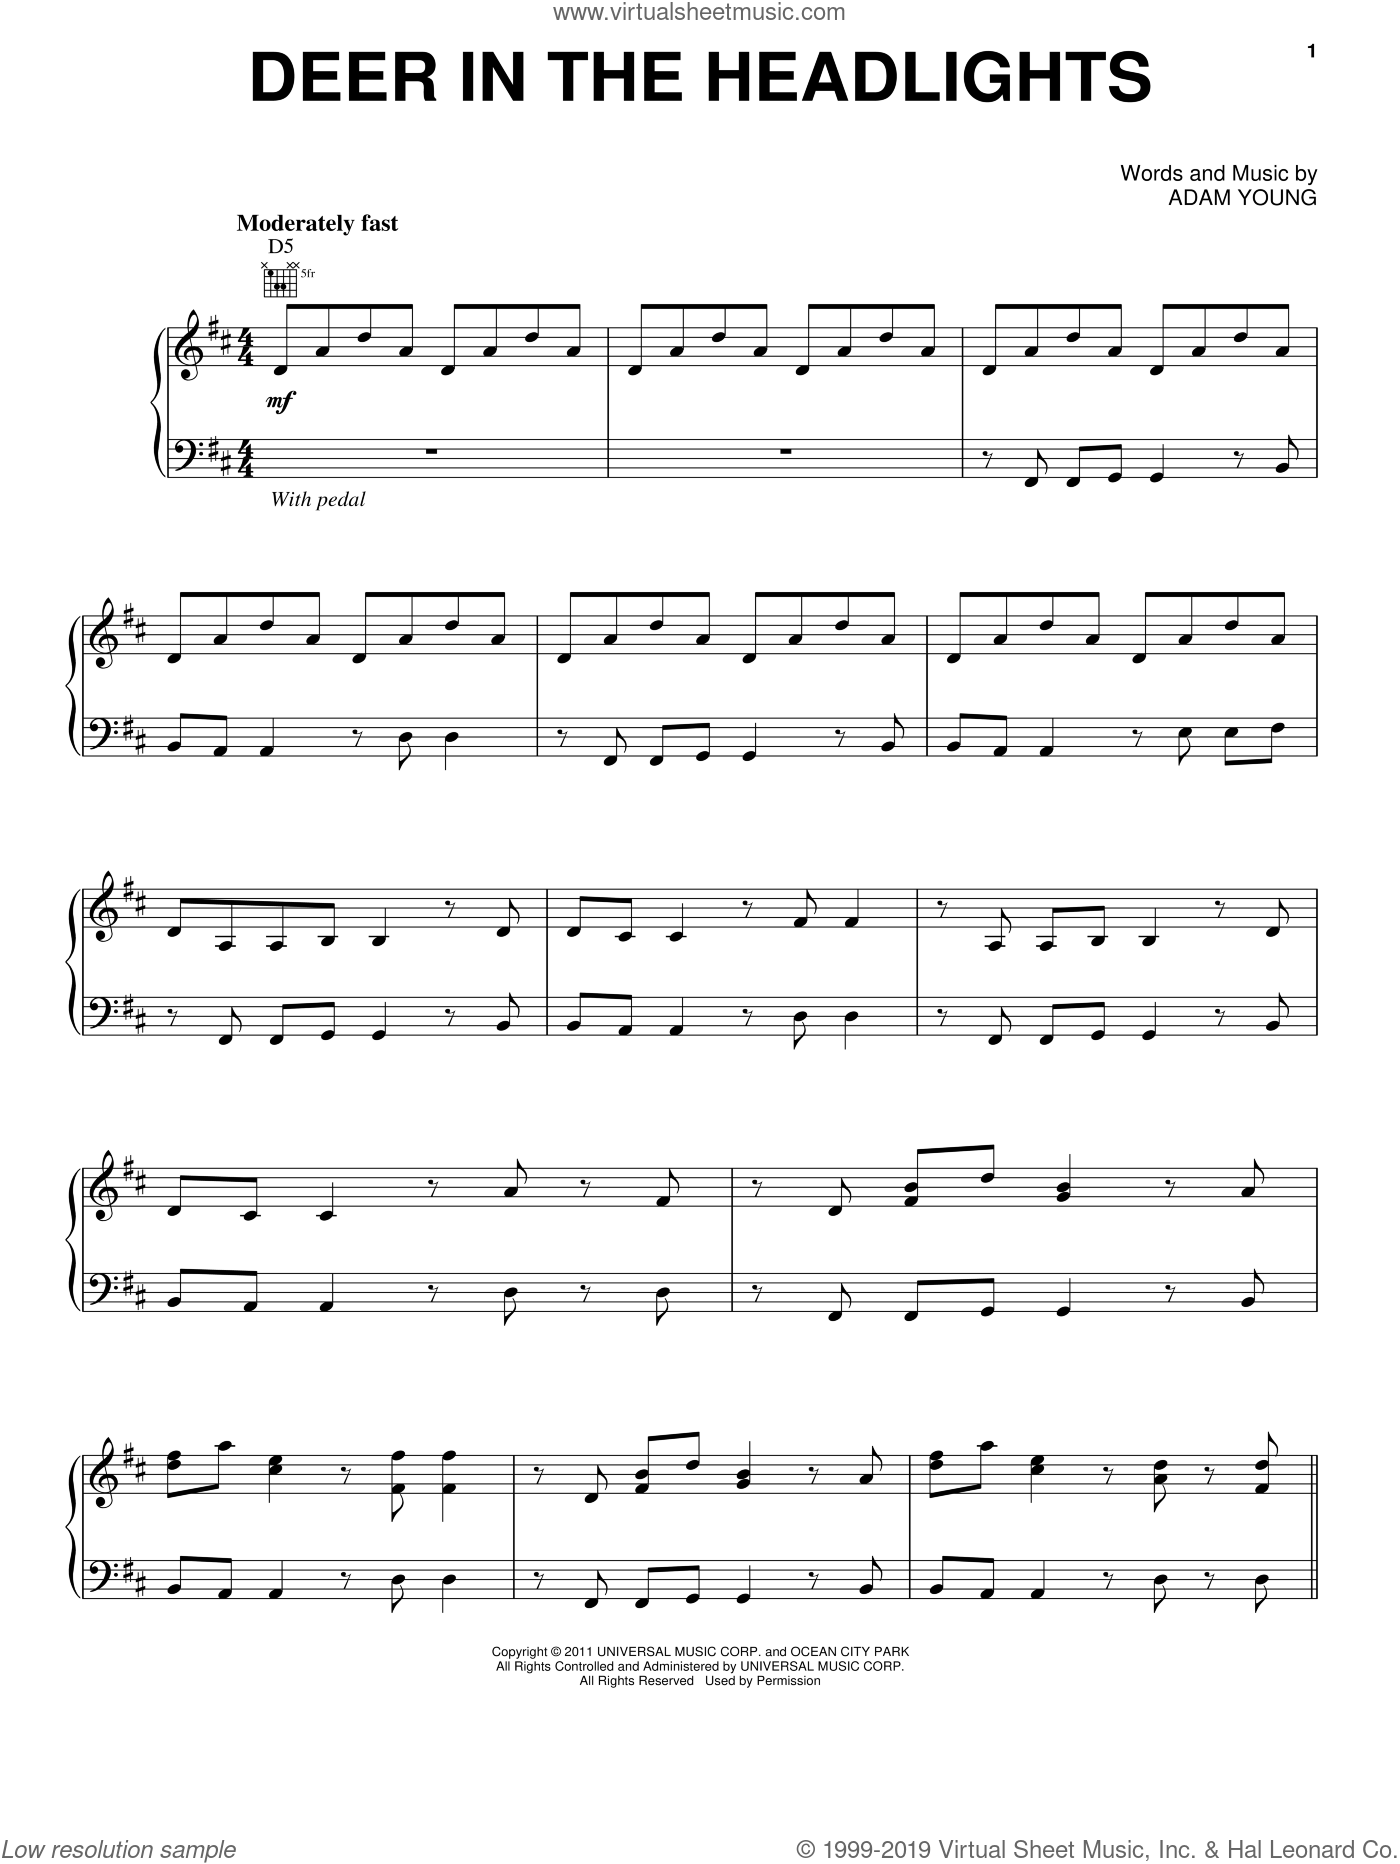 Deer In The Headlights sheet music for voice, piano or guitar by Adam Young